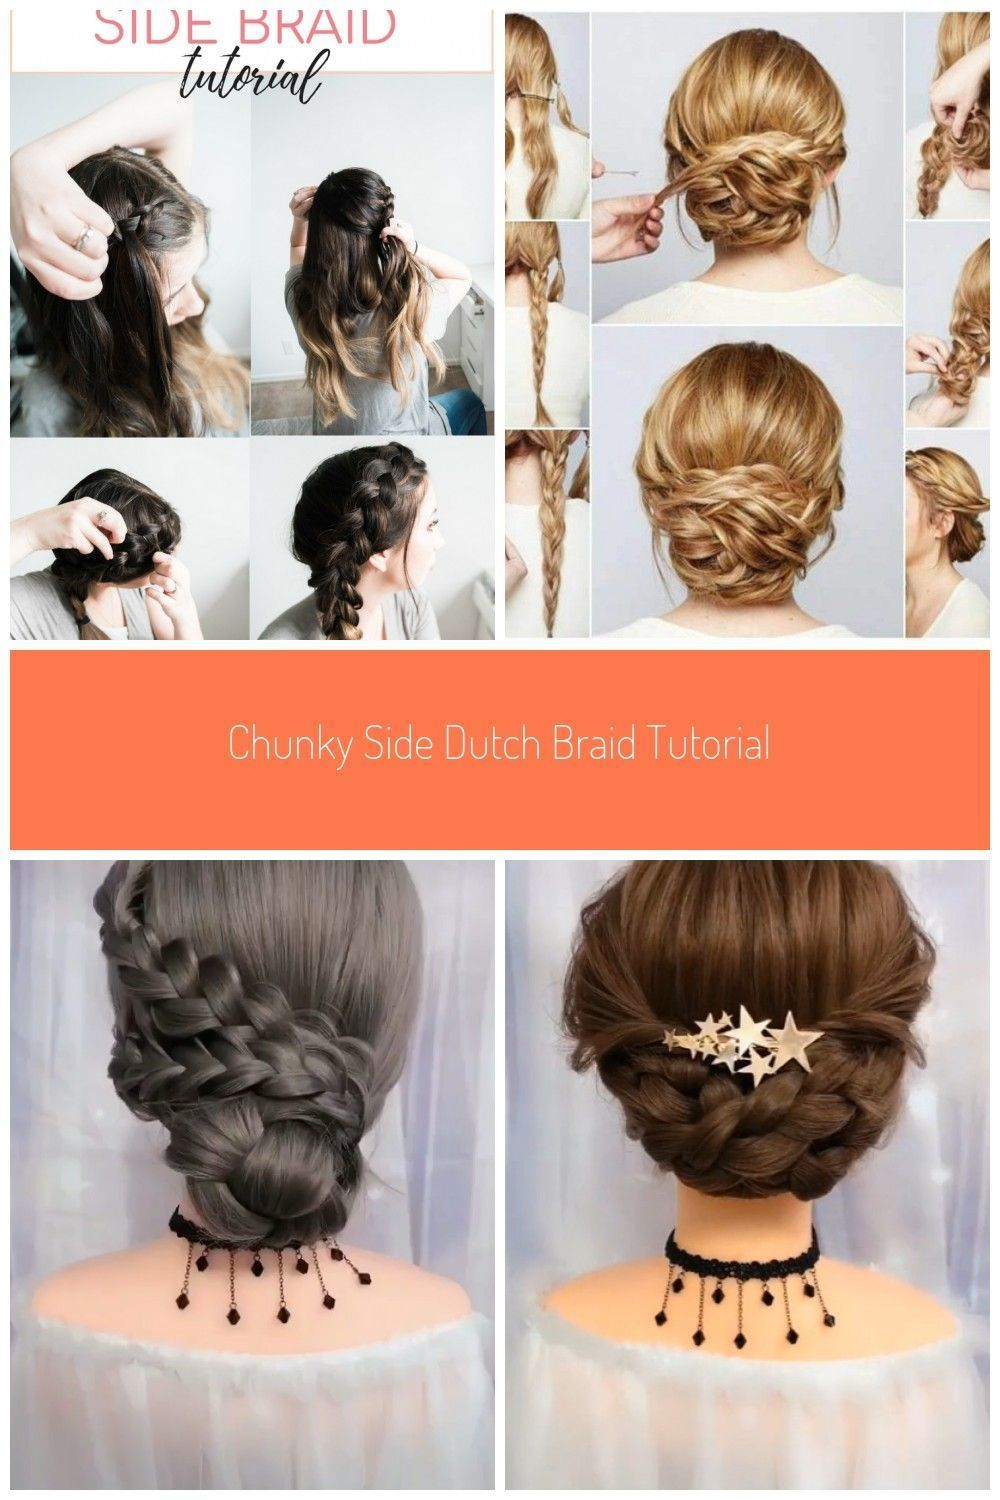 Most recent Photos An easy and quick Chunky Dutch Braid tutorial - here's how to acheive this beaut...  Popular   An easy and quick Chunky Dutch Braid tutorial – here's how to acheive this beautiful side braid #acheive #Beaut #Braid #Chunky #Dutch #easy #Heres #Photos #Popular #Quick #Tutorial #double Braids with extensions # double Braids with extensions